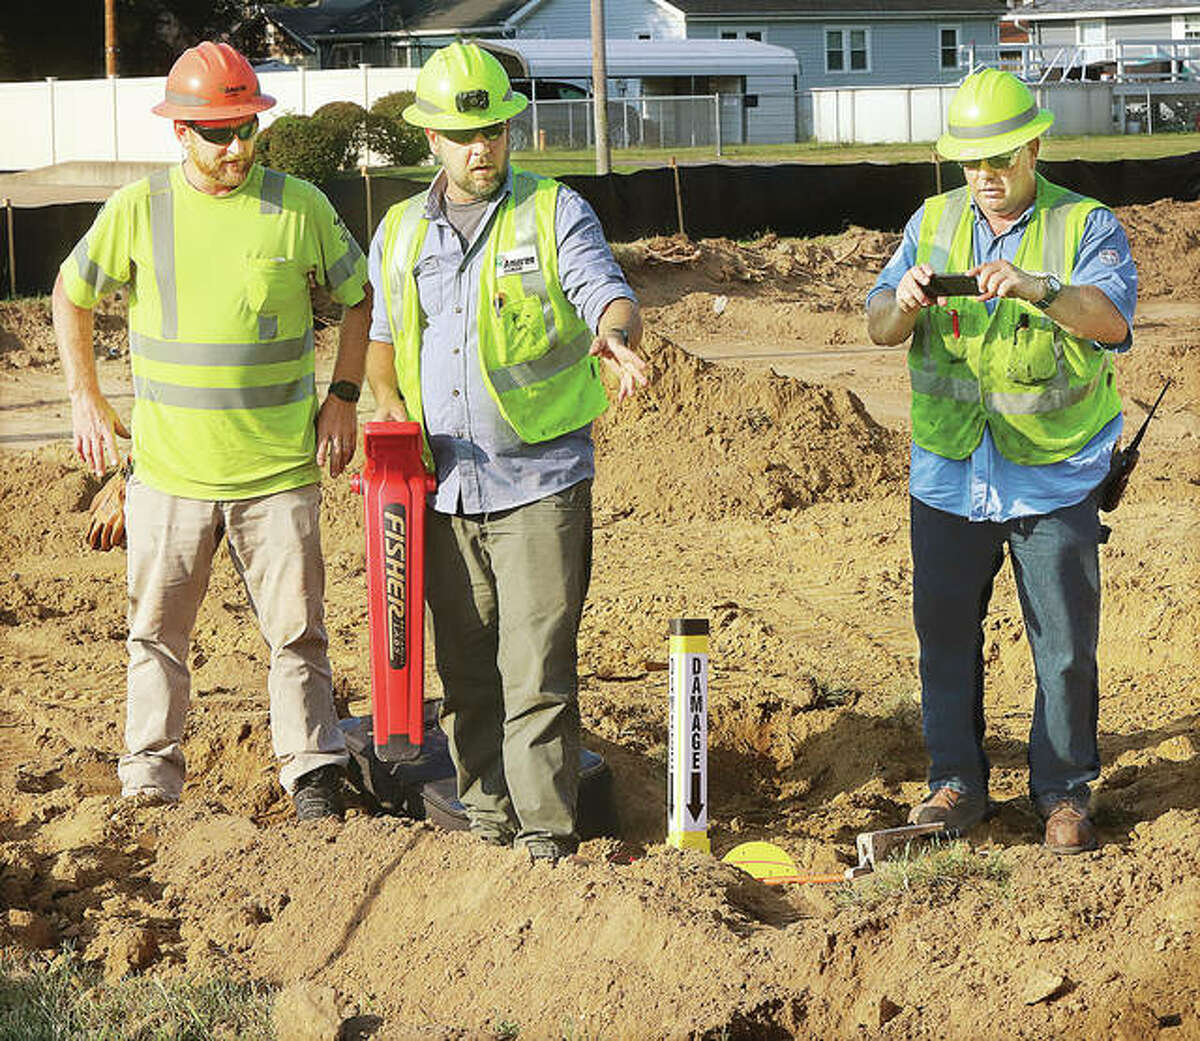 Three workers from the Ameren Gas Division mark the spot of a gas leak Friday morning near the corner of Madison and Central avenues in Wood River. The leak was caused by groundwork for an extension of the parking lot of the adjacent Petro Mart convienience store. No injuries were reported.